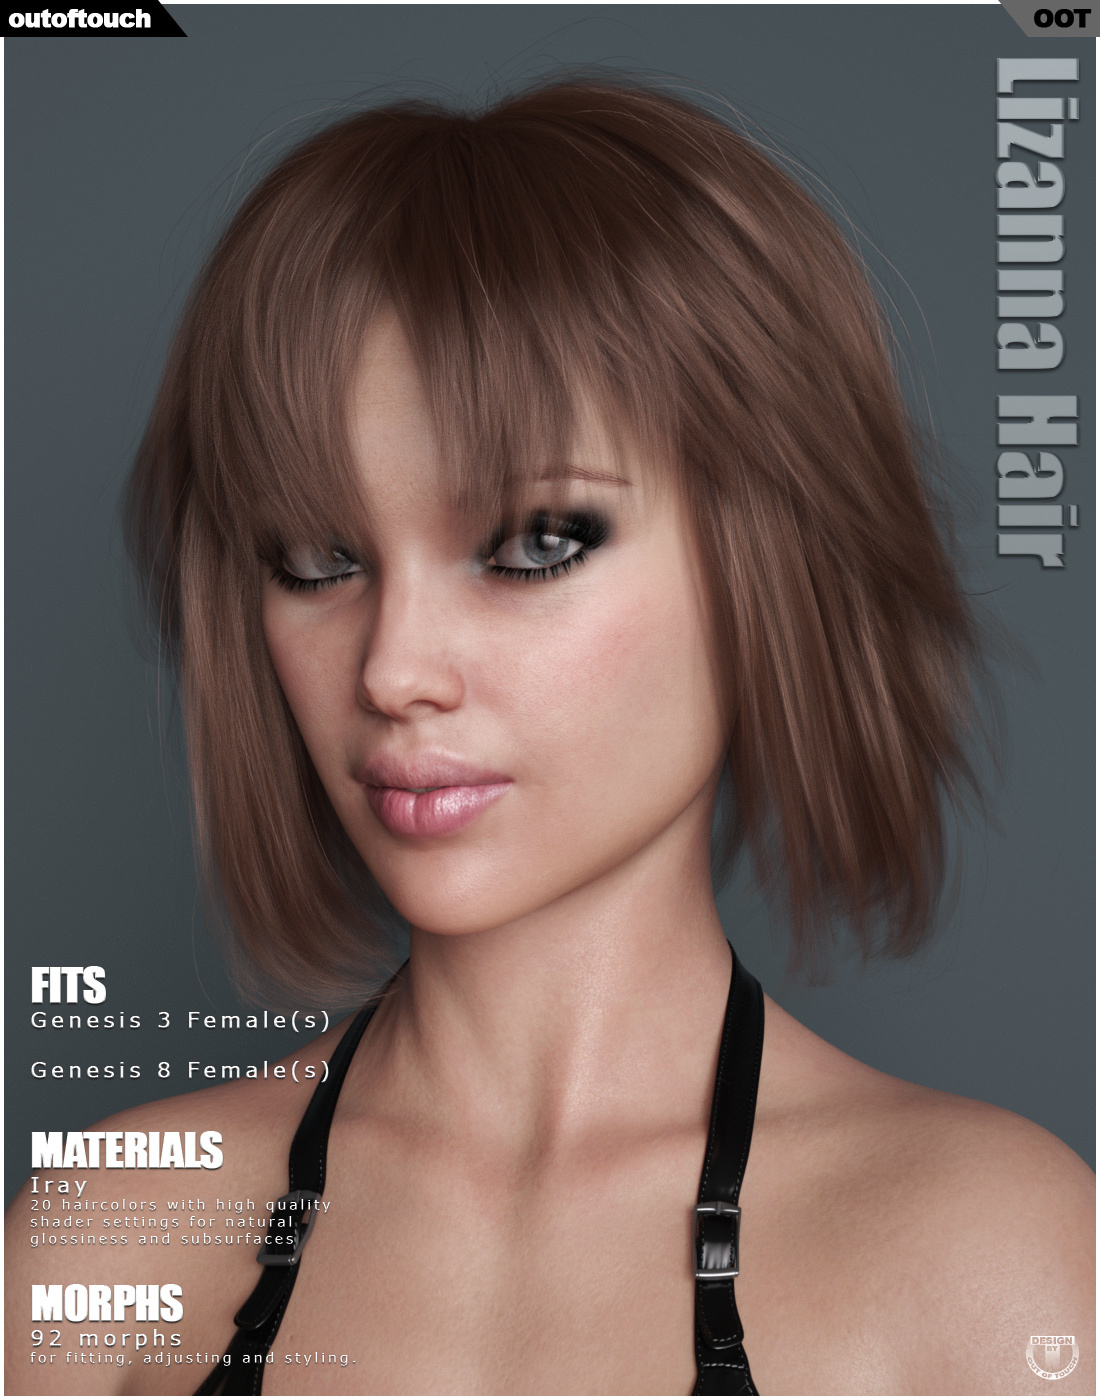 Lizanna Hair for Genesis 3 and 8 Females by outoftouch